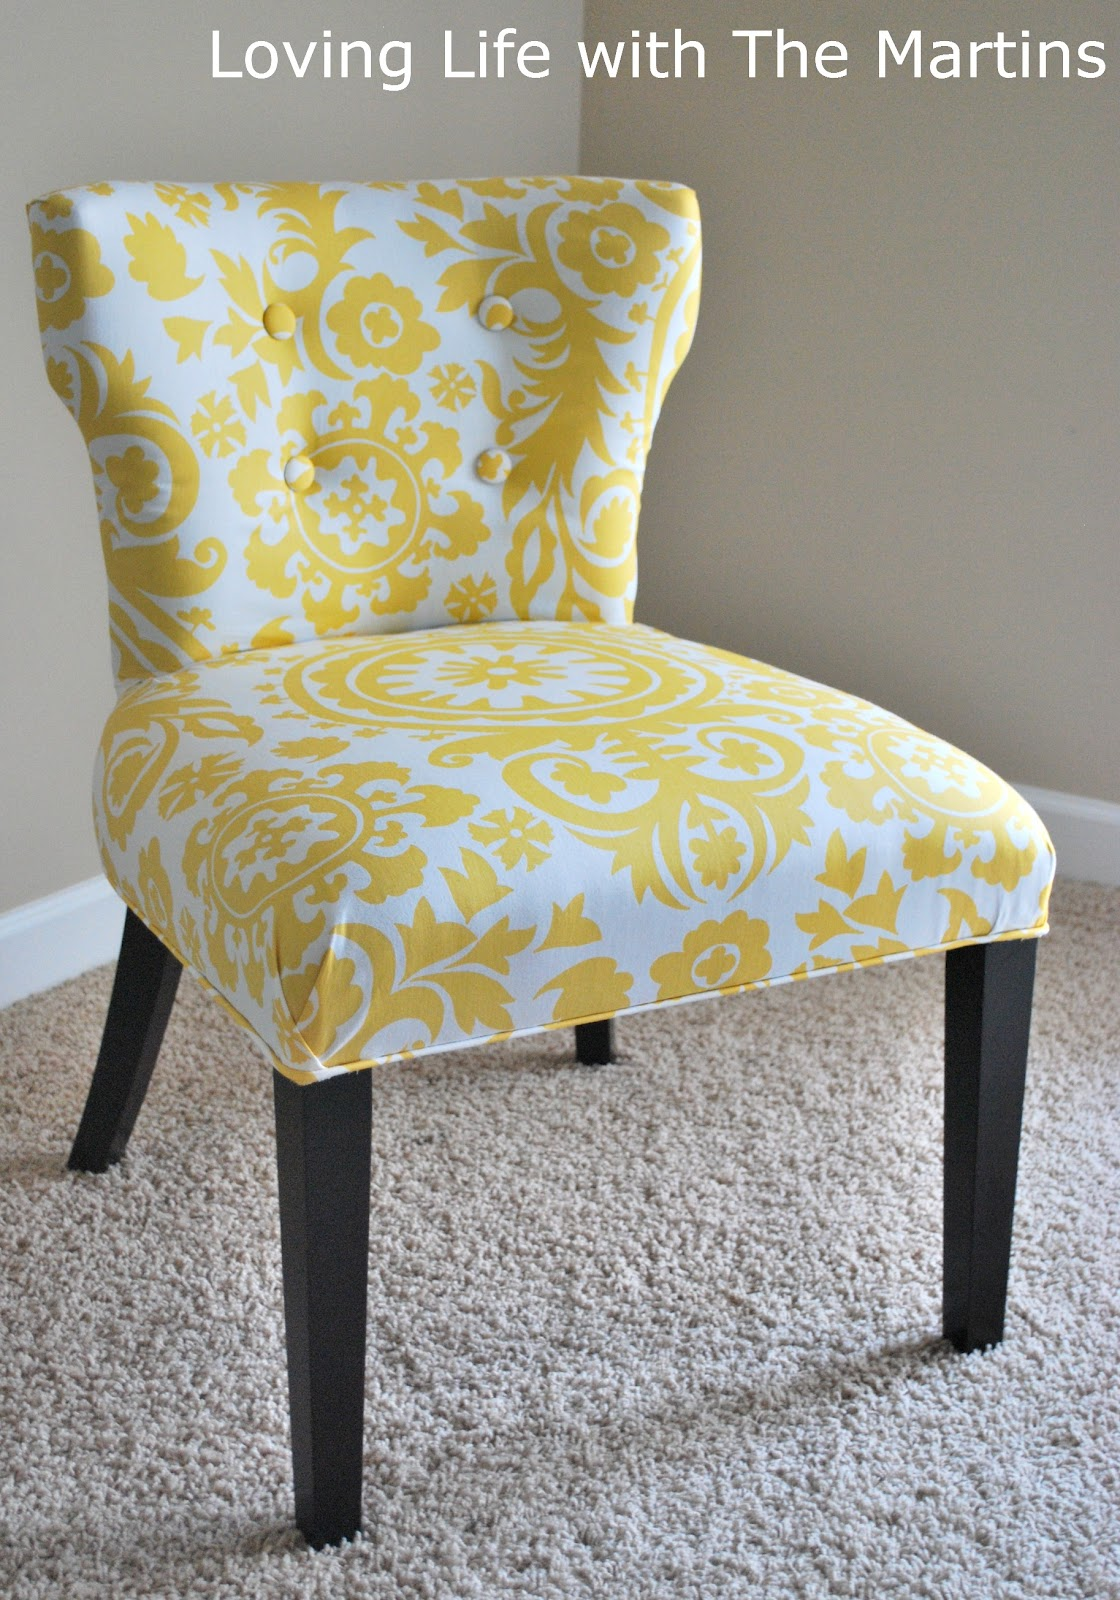 Loving Life with The Martins: How to Reupholster a Chair